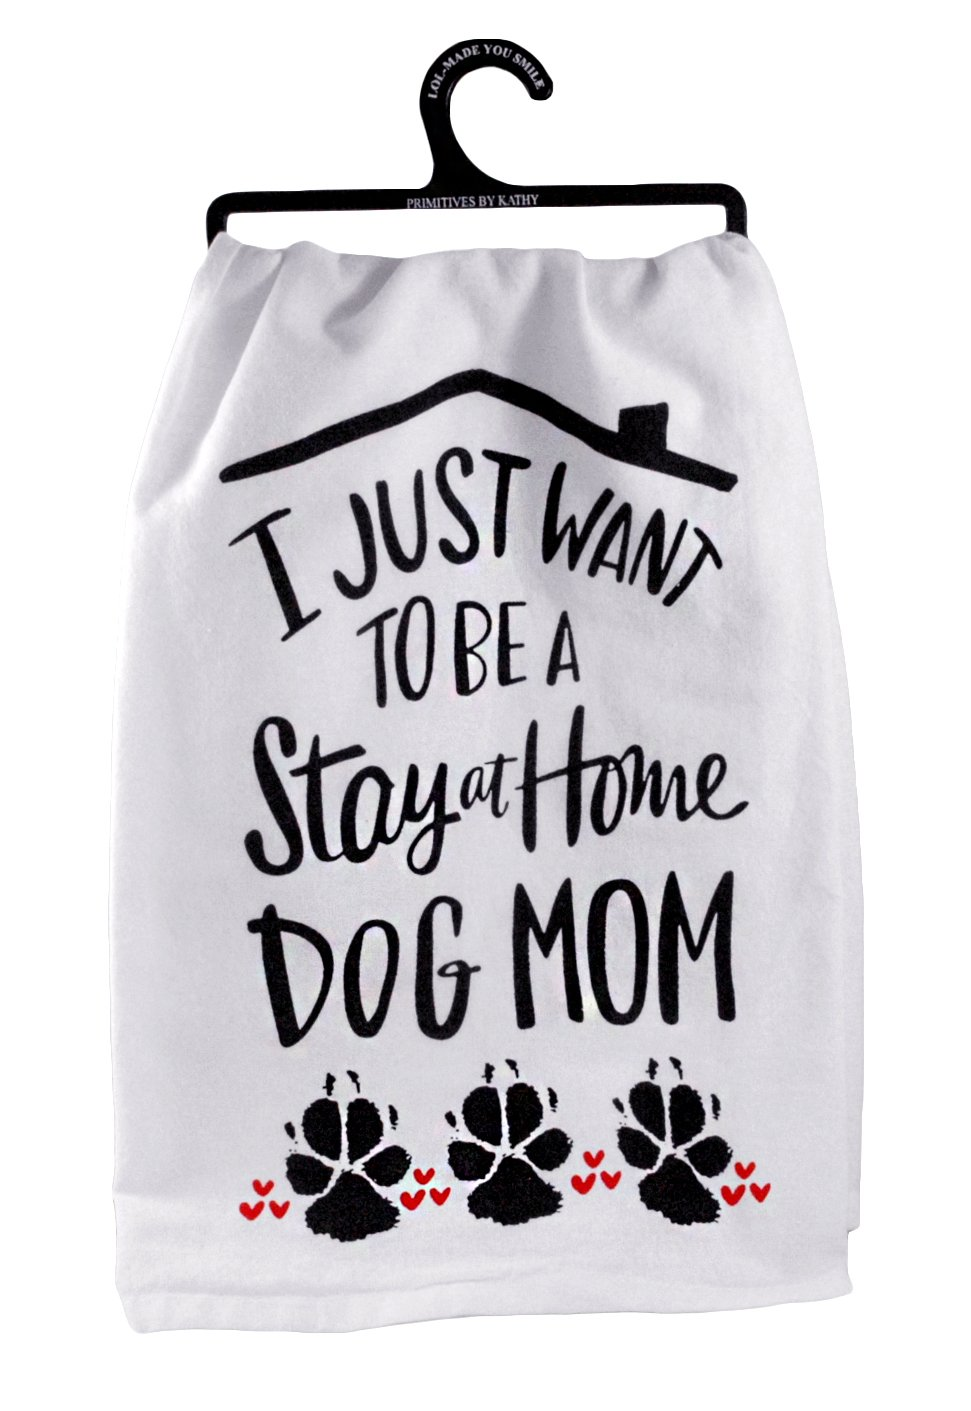 I Just Want to be a Stay at Home Dog Mom Decorative Cotton Towel